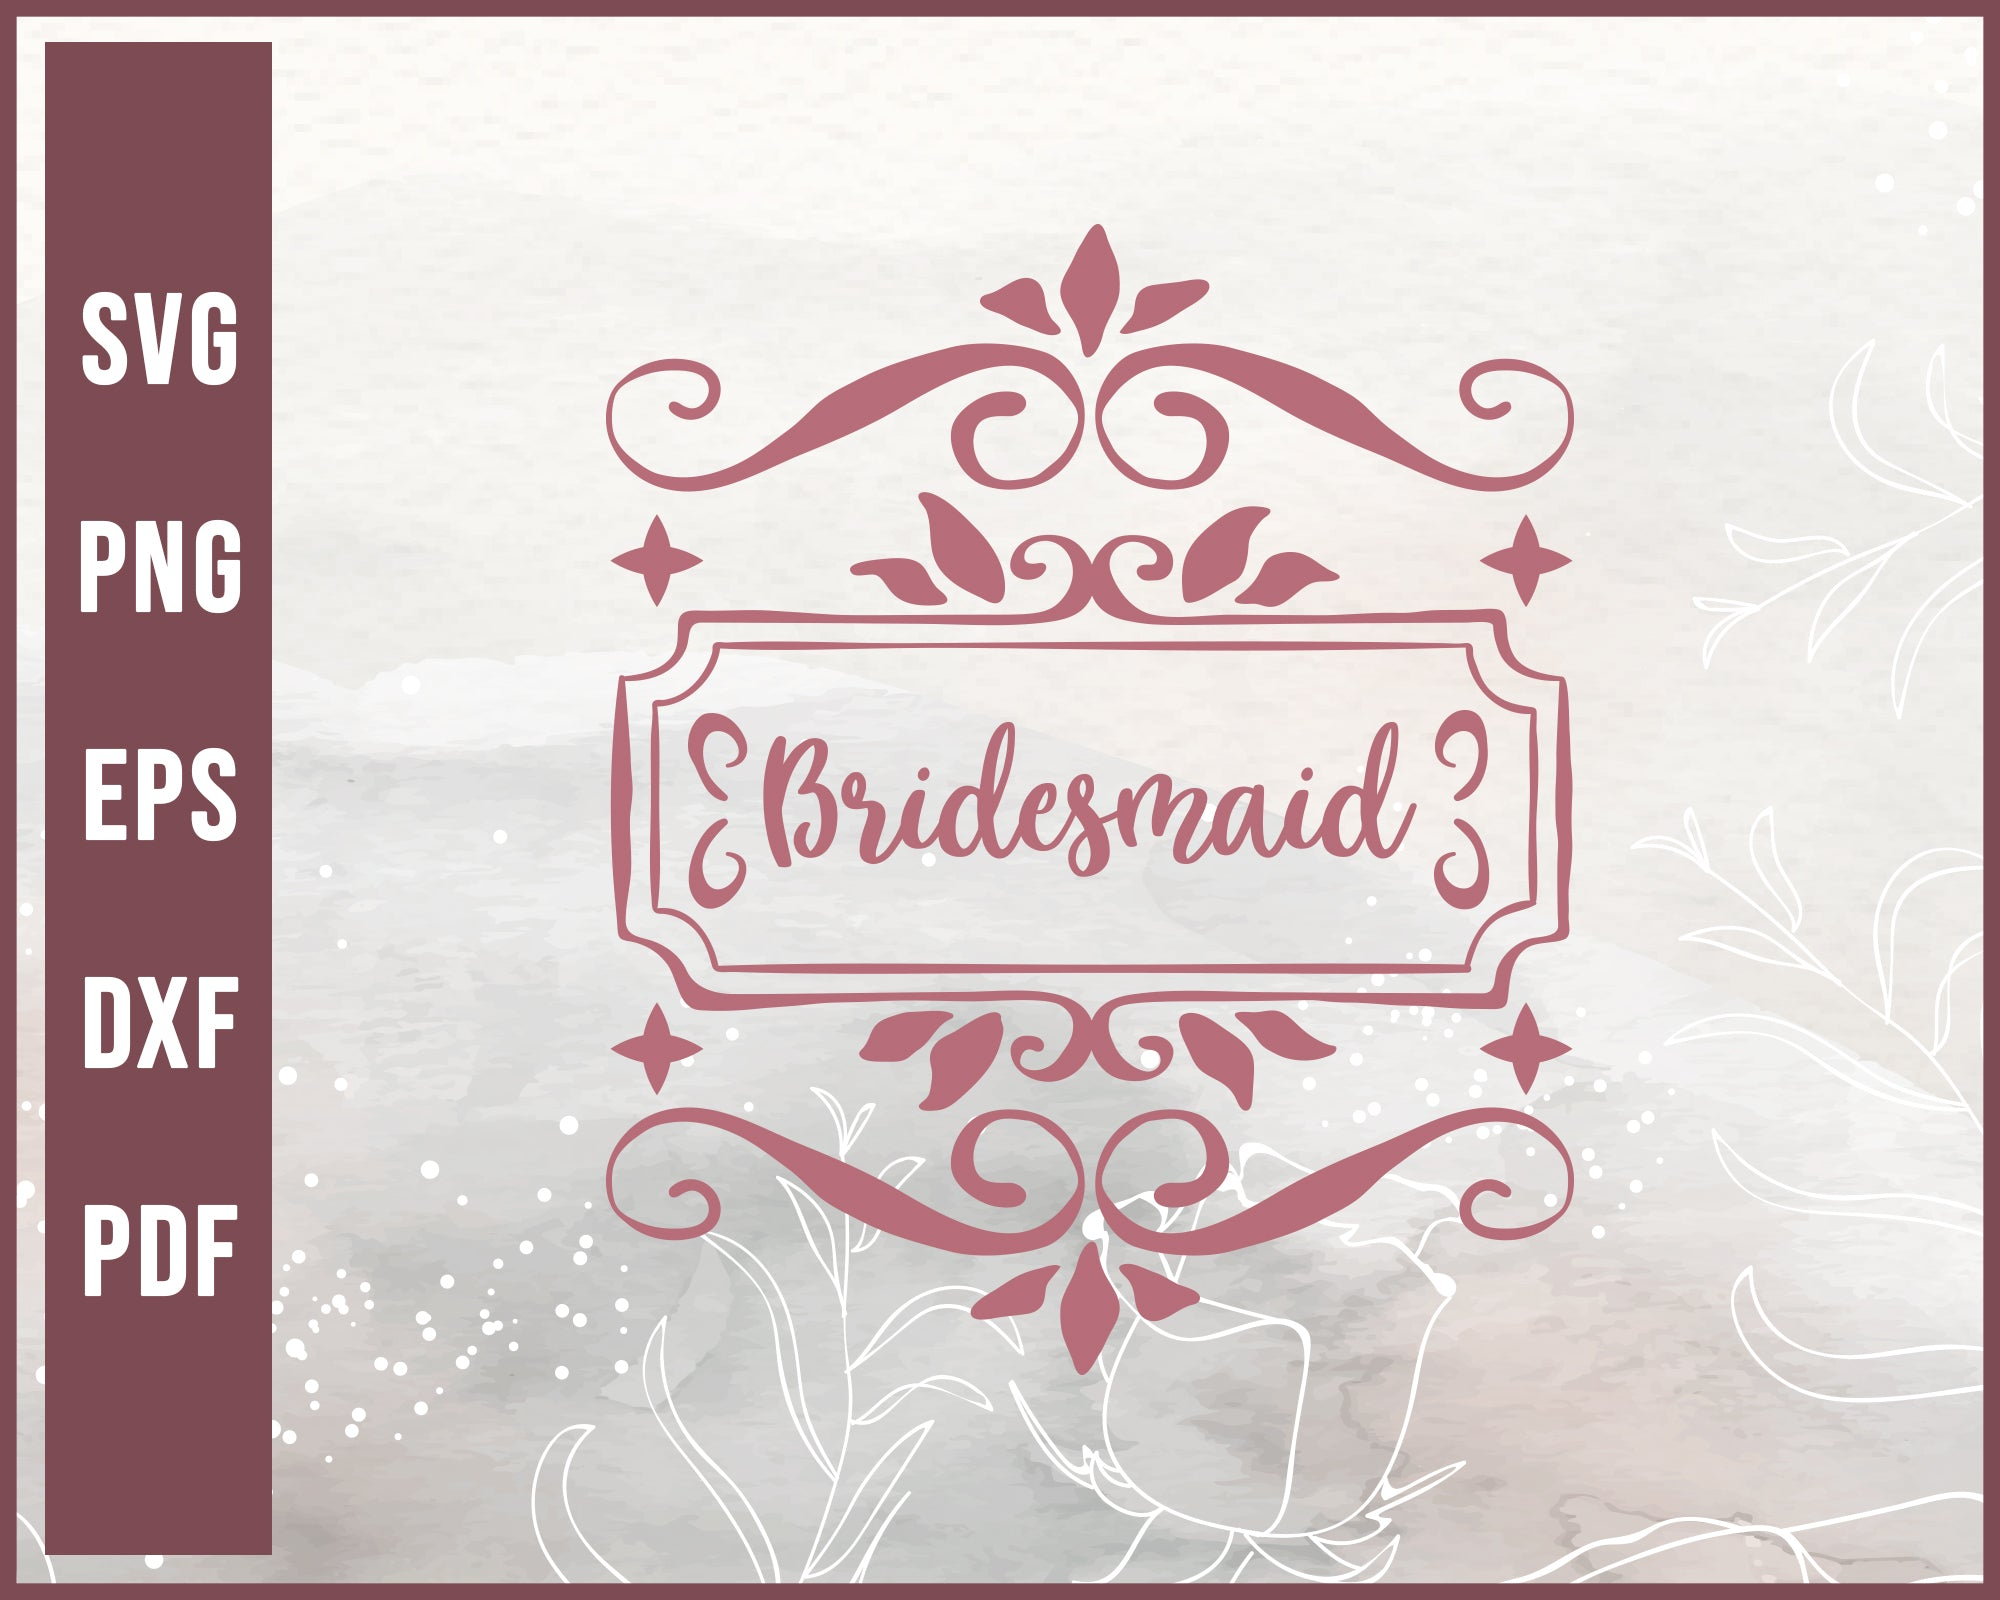 Bridesmaid Wedding svg Designs For Cricut Silhouette And eps png Printable Files